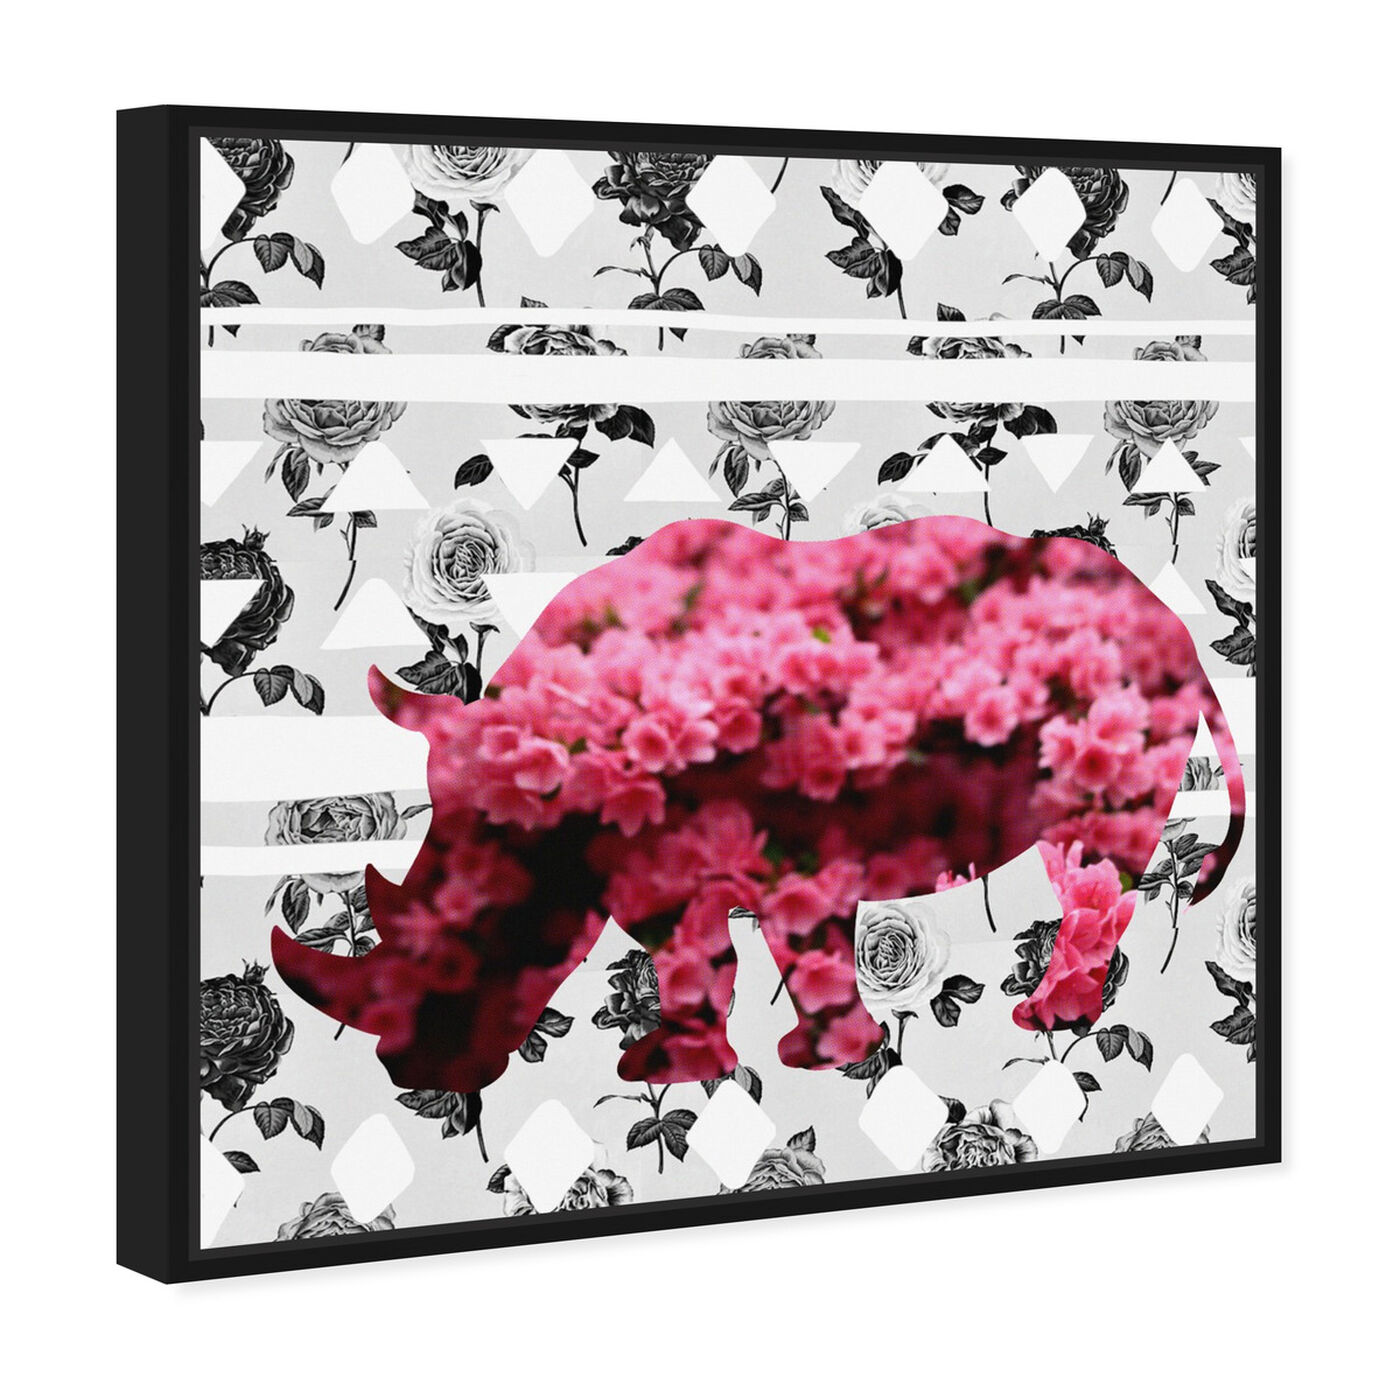 Angled view of Spring Rhino featuring animals and zoo and wild animals art.